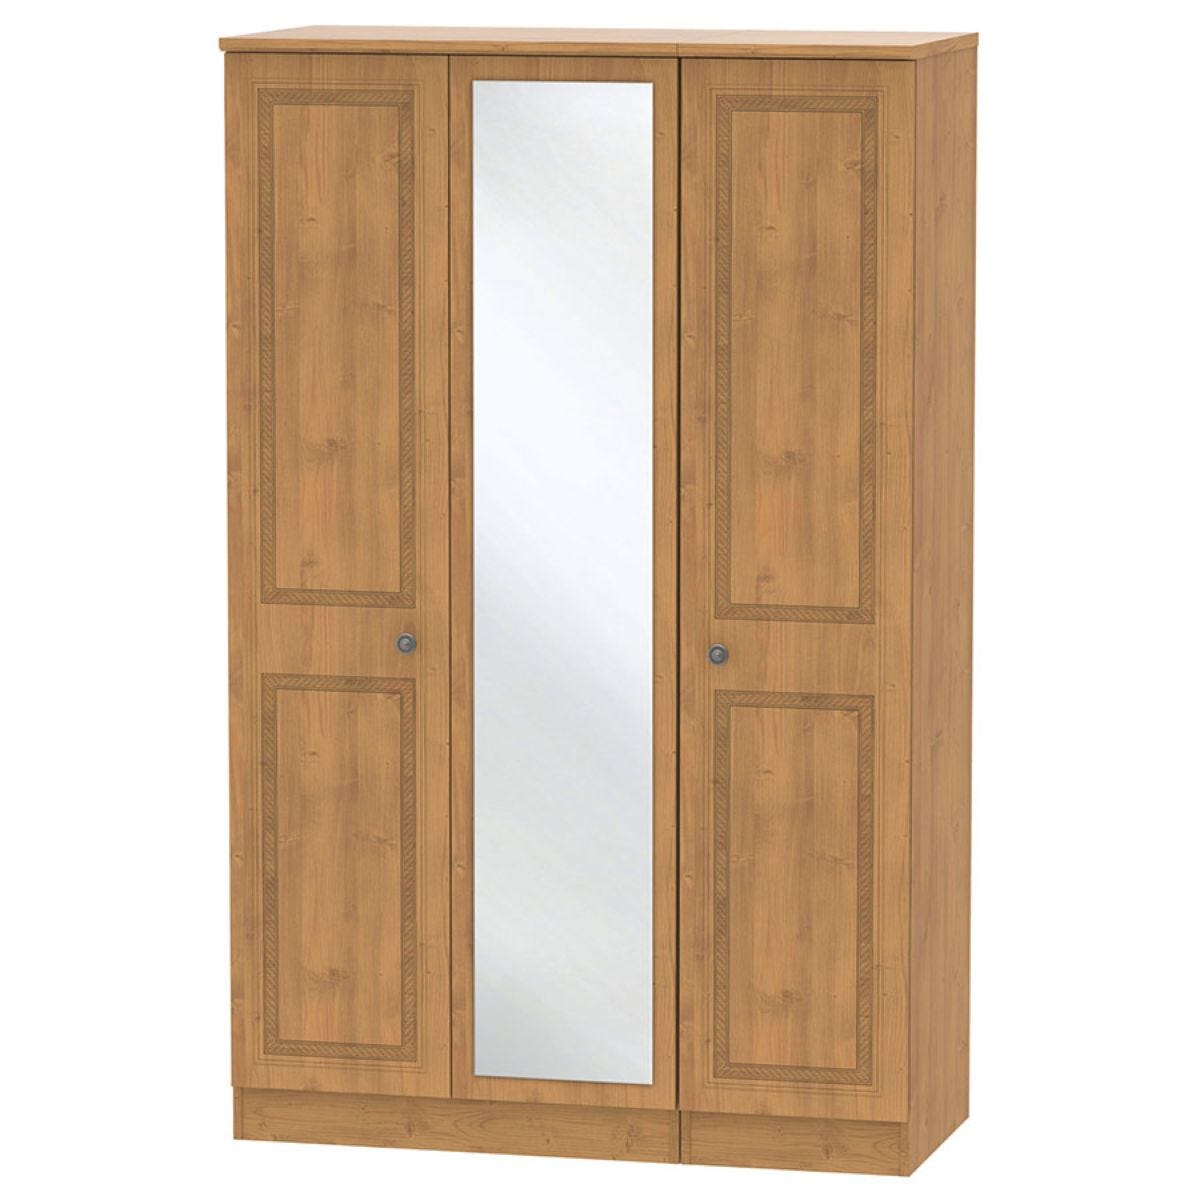 Otega 3-Door Mirrored Wardrobe -Oak